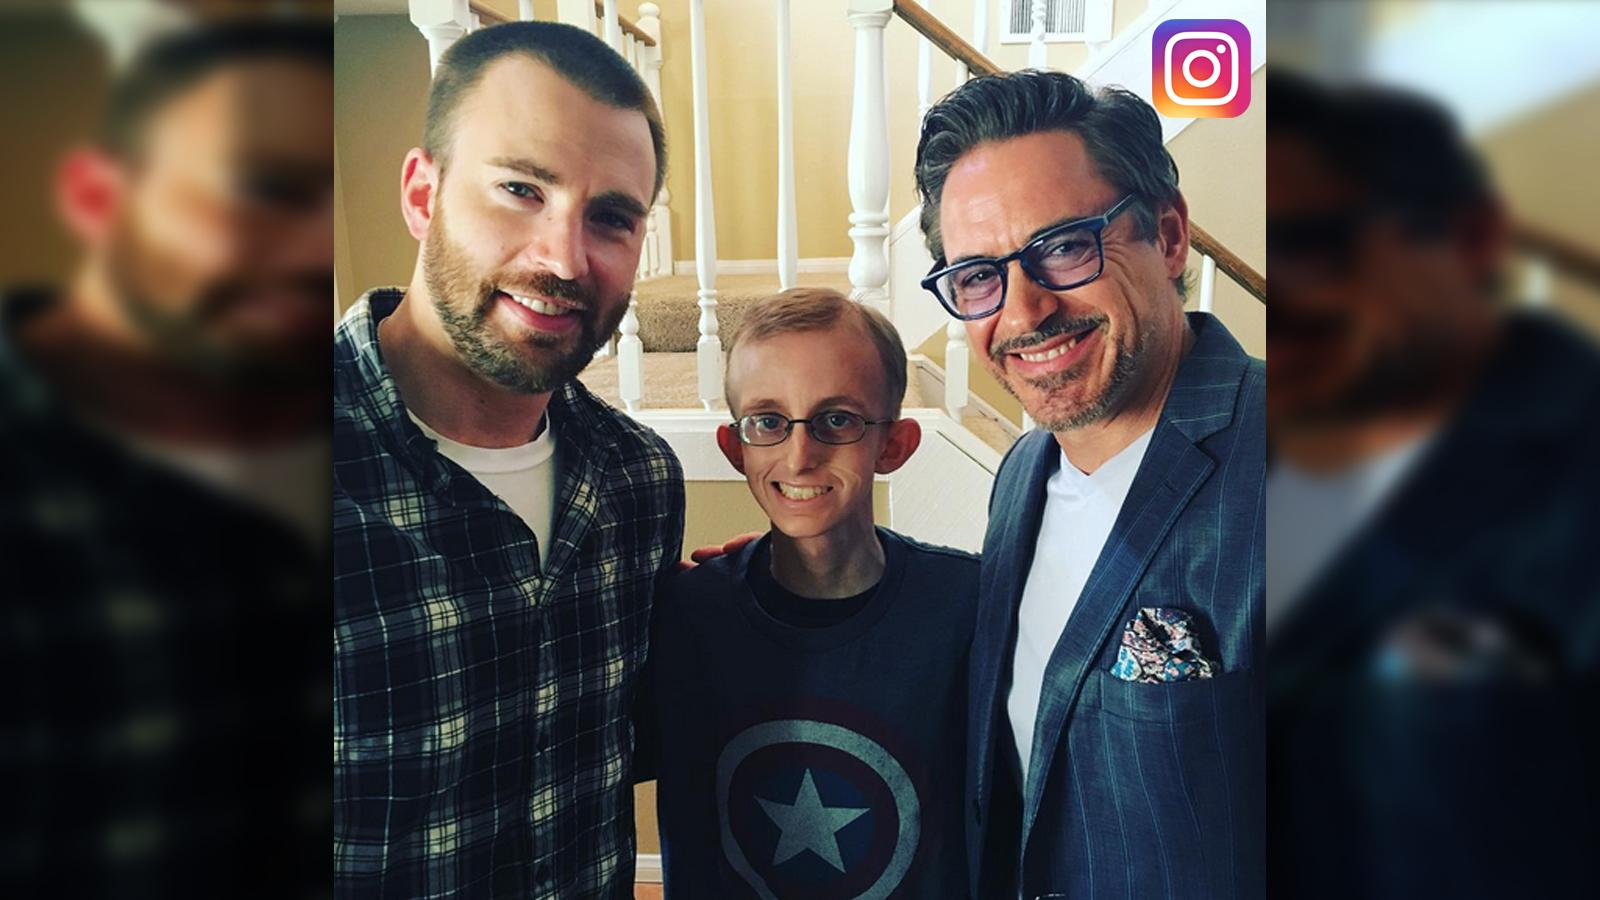 Robert Downey Jr., Chris Evans & Gwyneth Paltrow Surprise 'Avengers' Fan Battling Leukemia